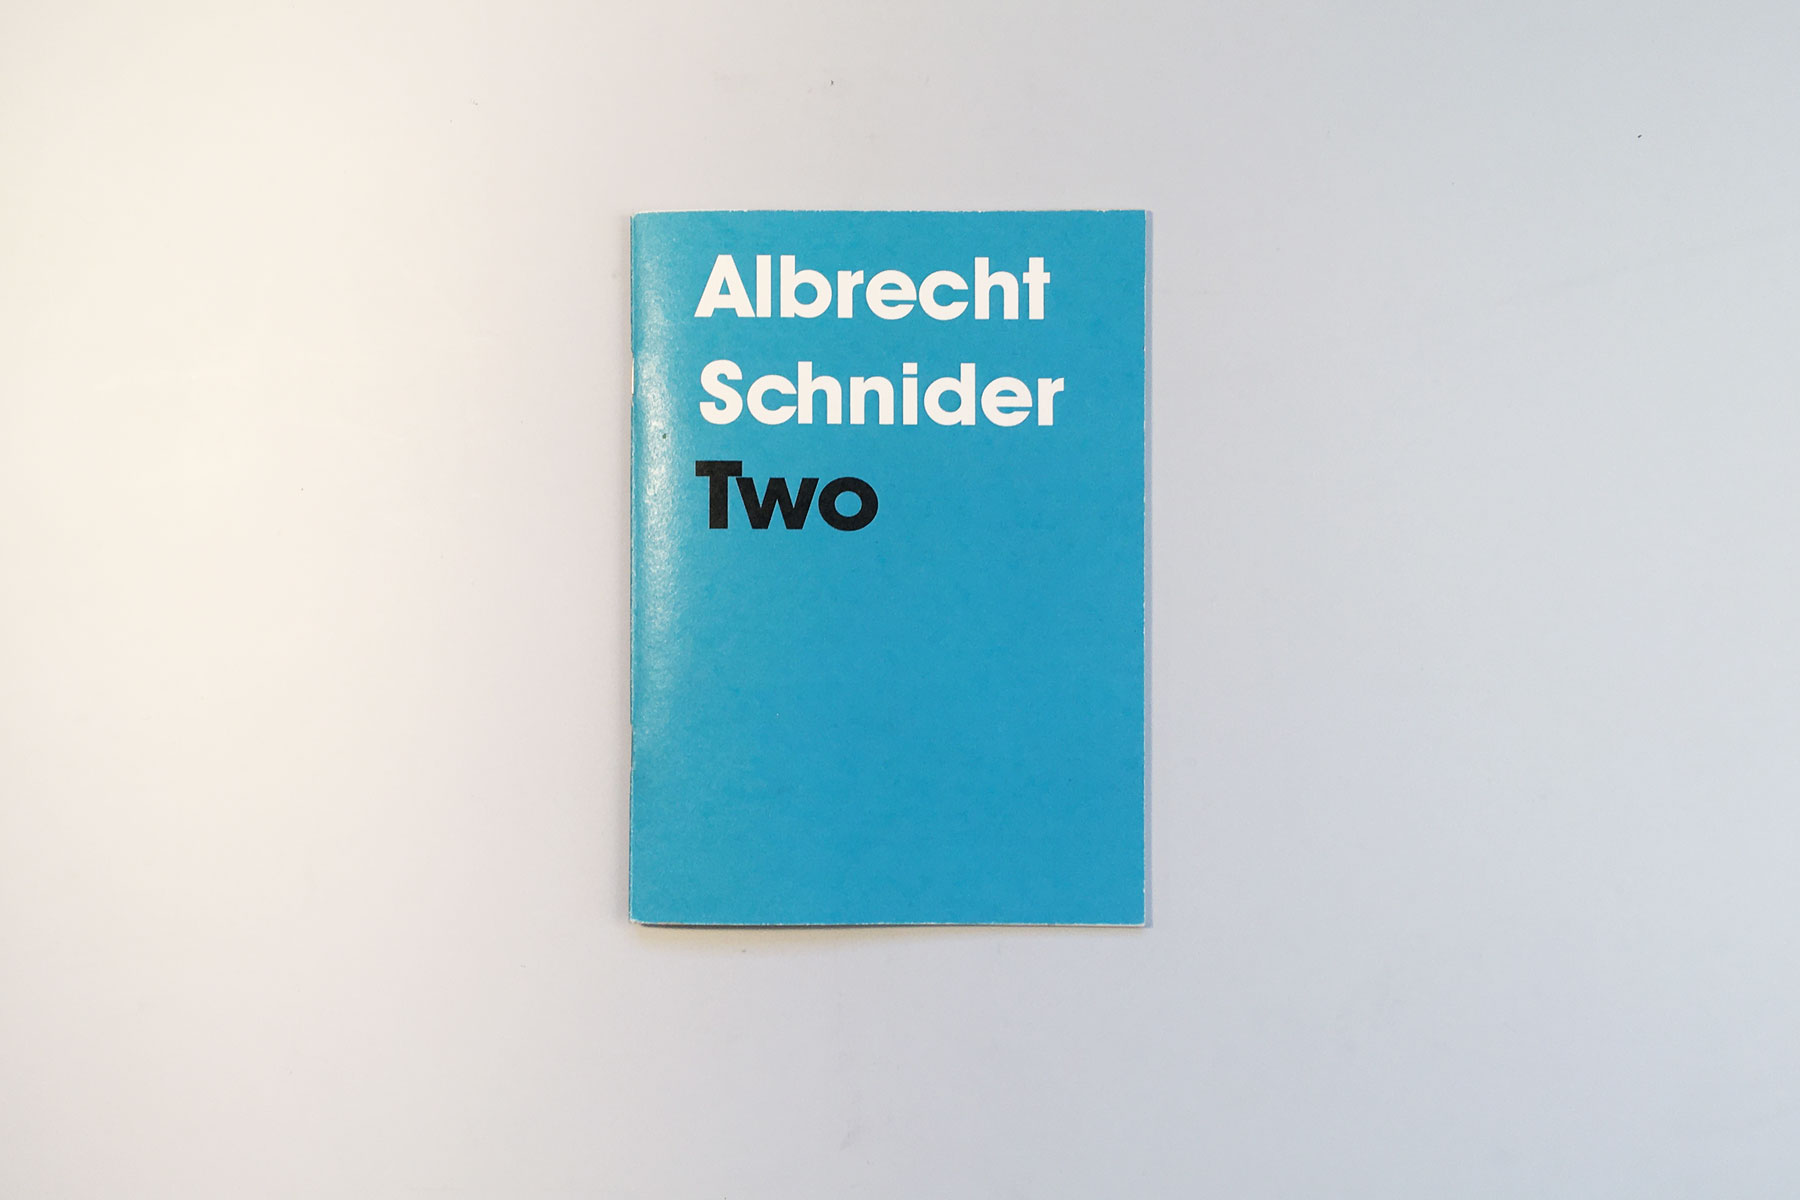 albrecht_schnider_two_as-two_1_1609960504.jpg